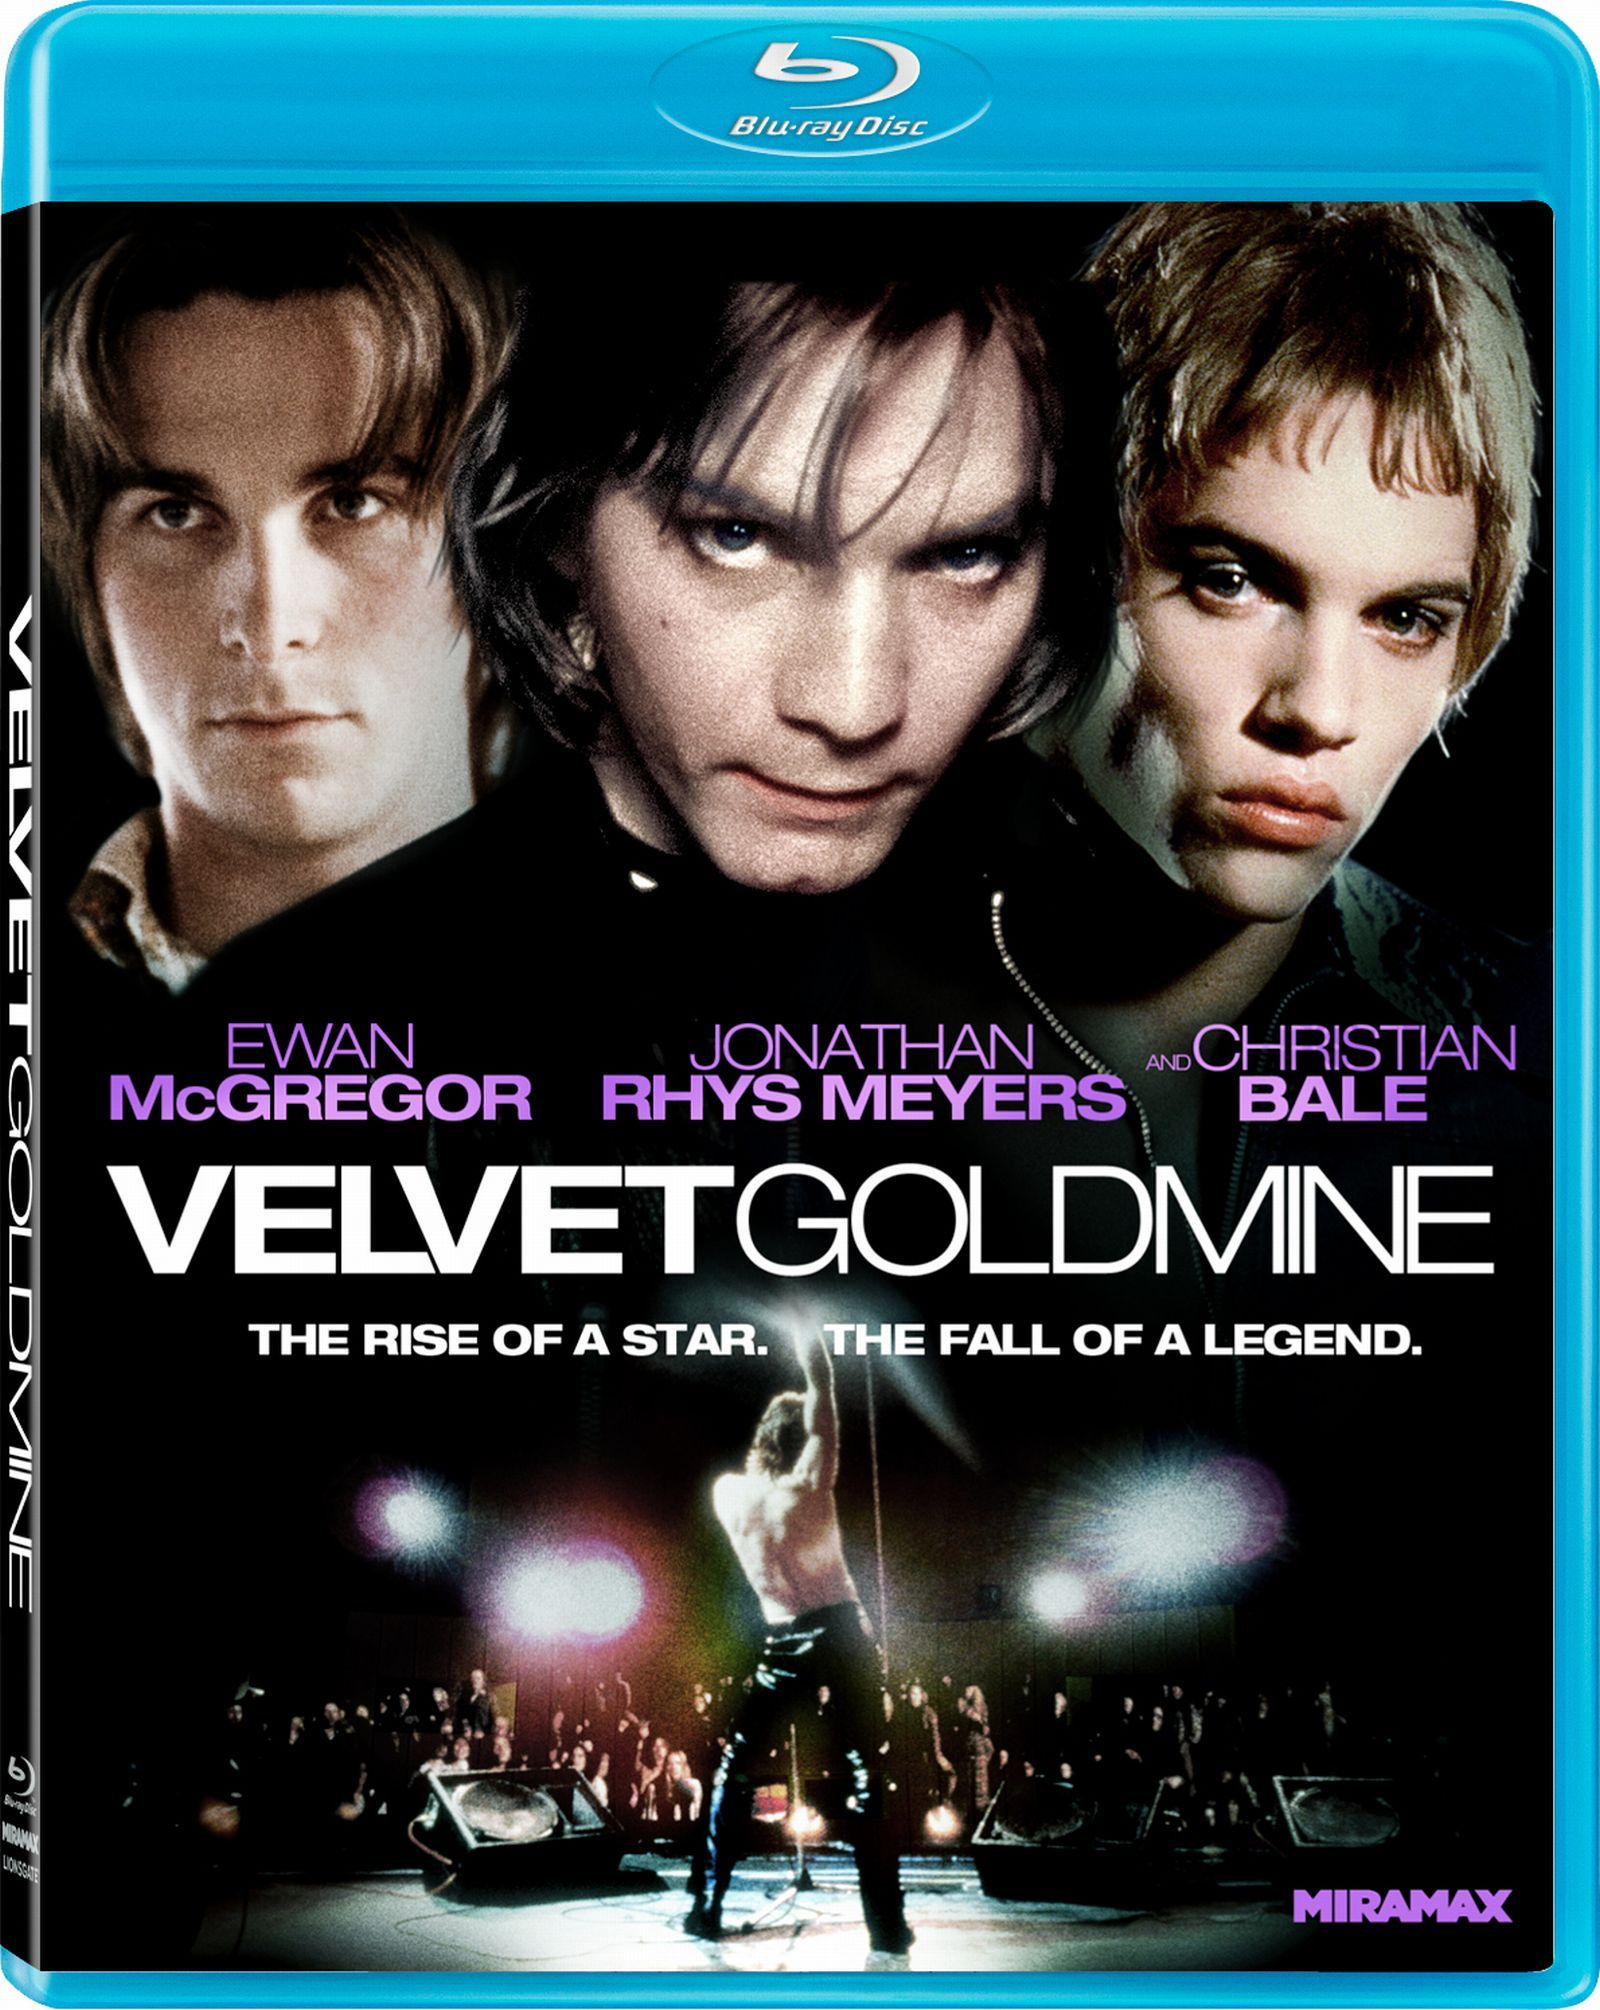 VELVET GOLDMINE Blu-ray Review | Collider